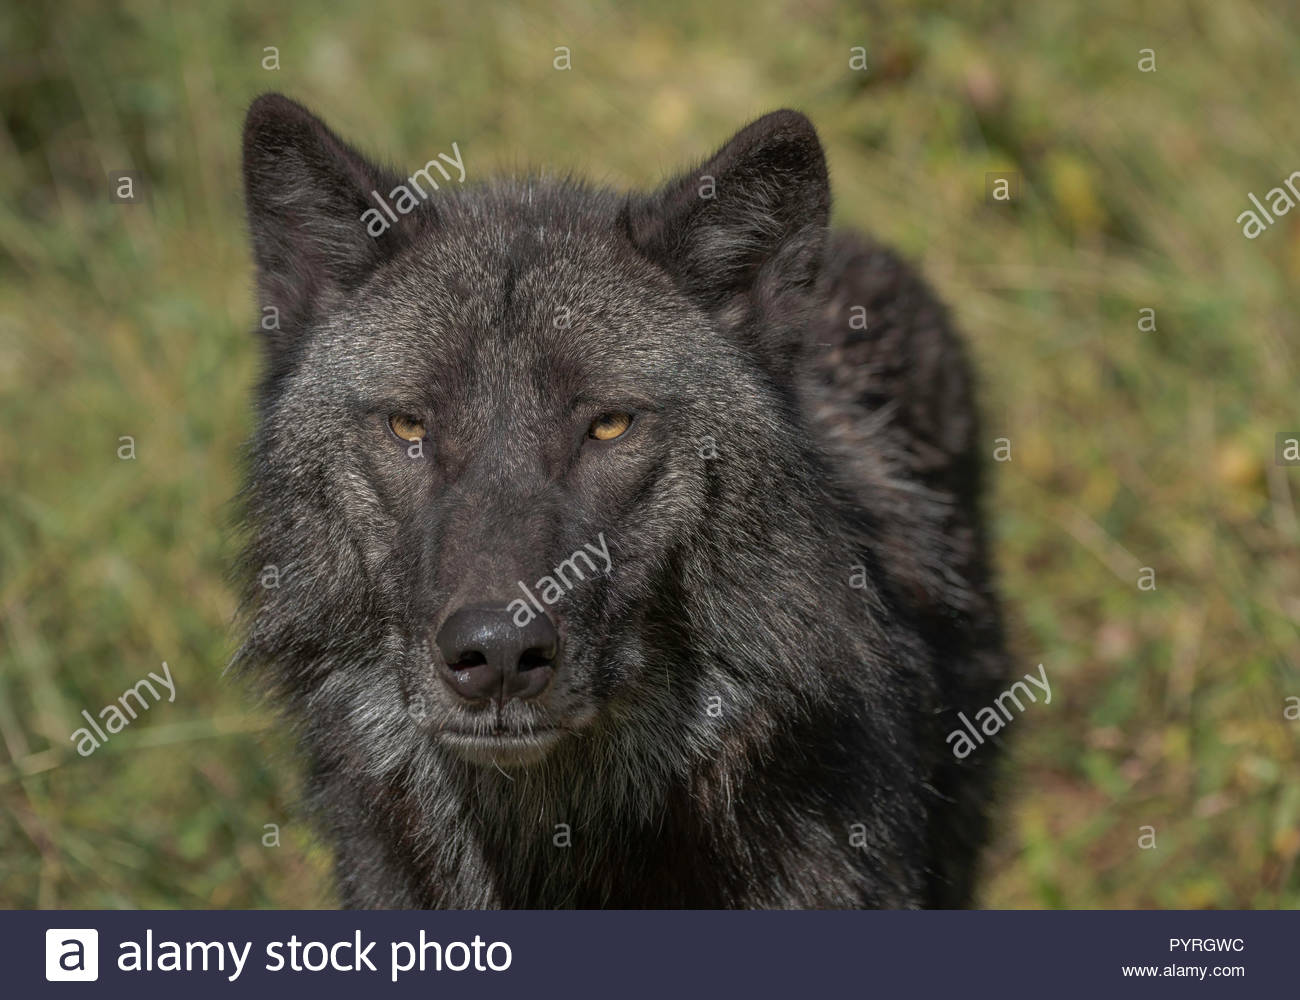 Timber Wolf (also known as a Grey Wolf or Gray Wolf) with black and silver markings and gold eyes looking directly at the camera - Stock Image